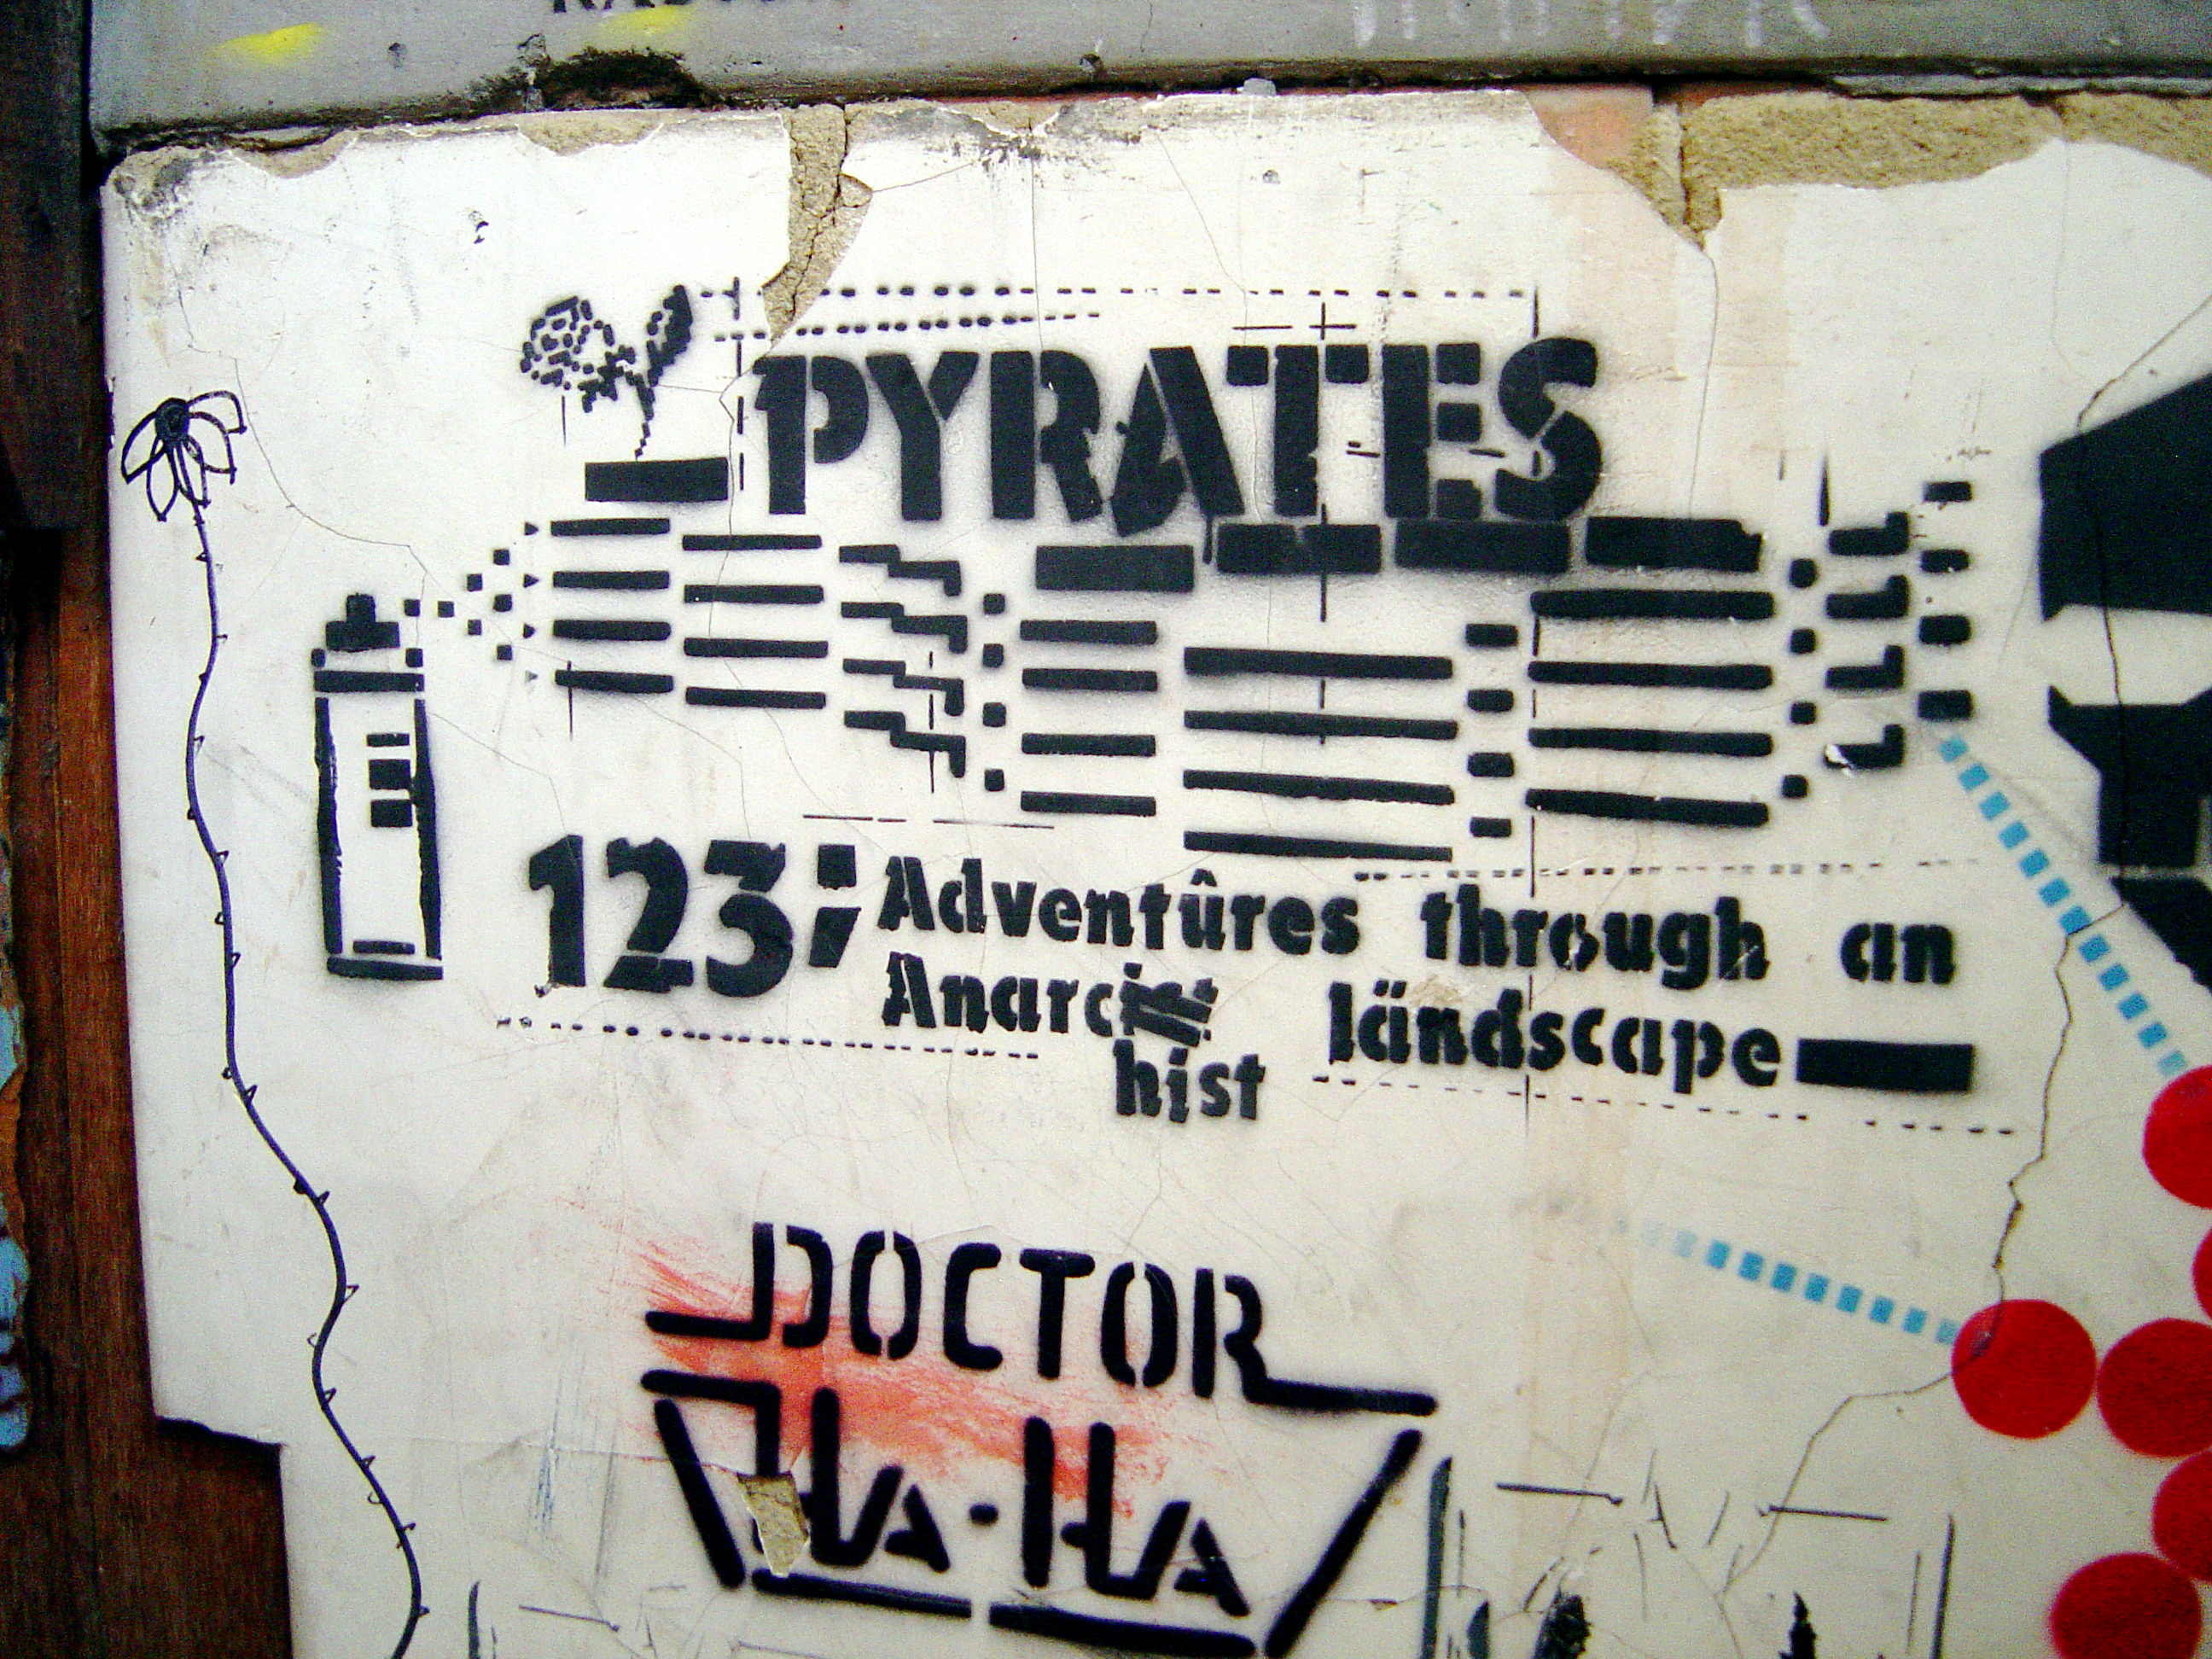 doctor-haha-pyrates-irene-warehouse